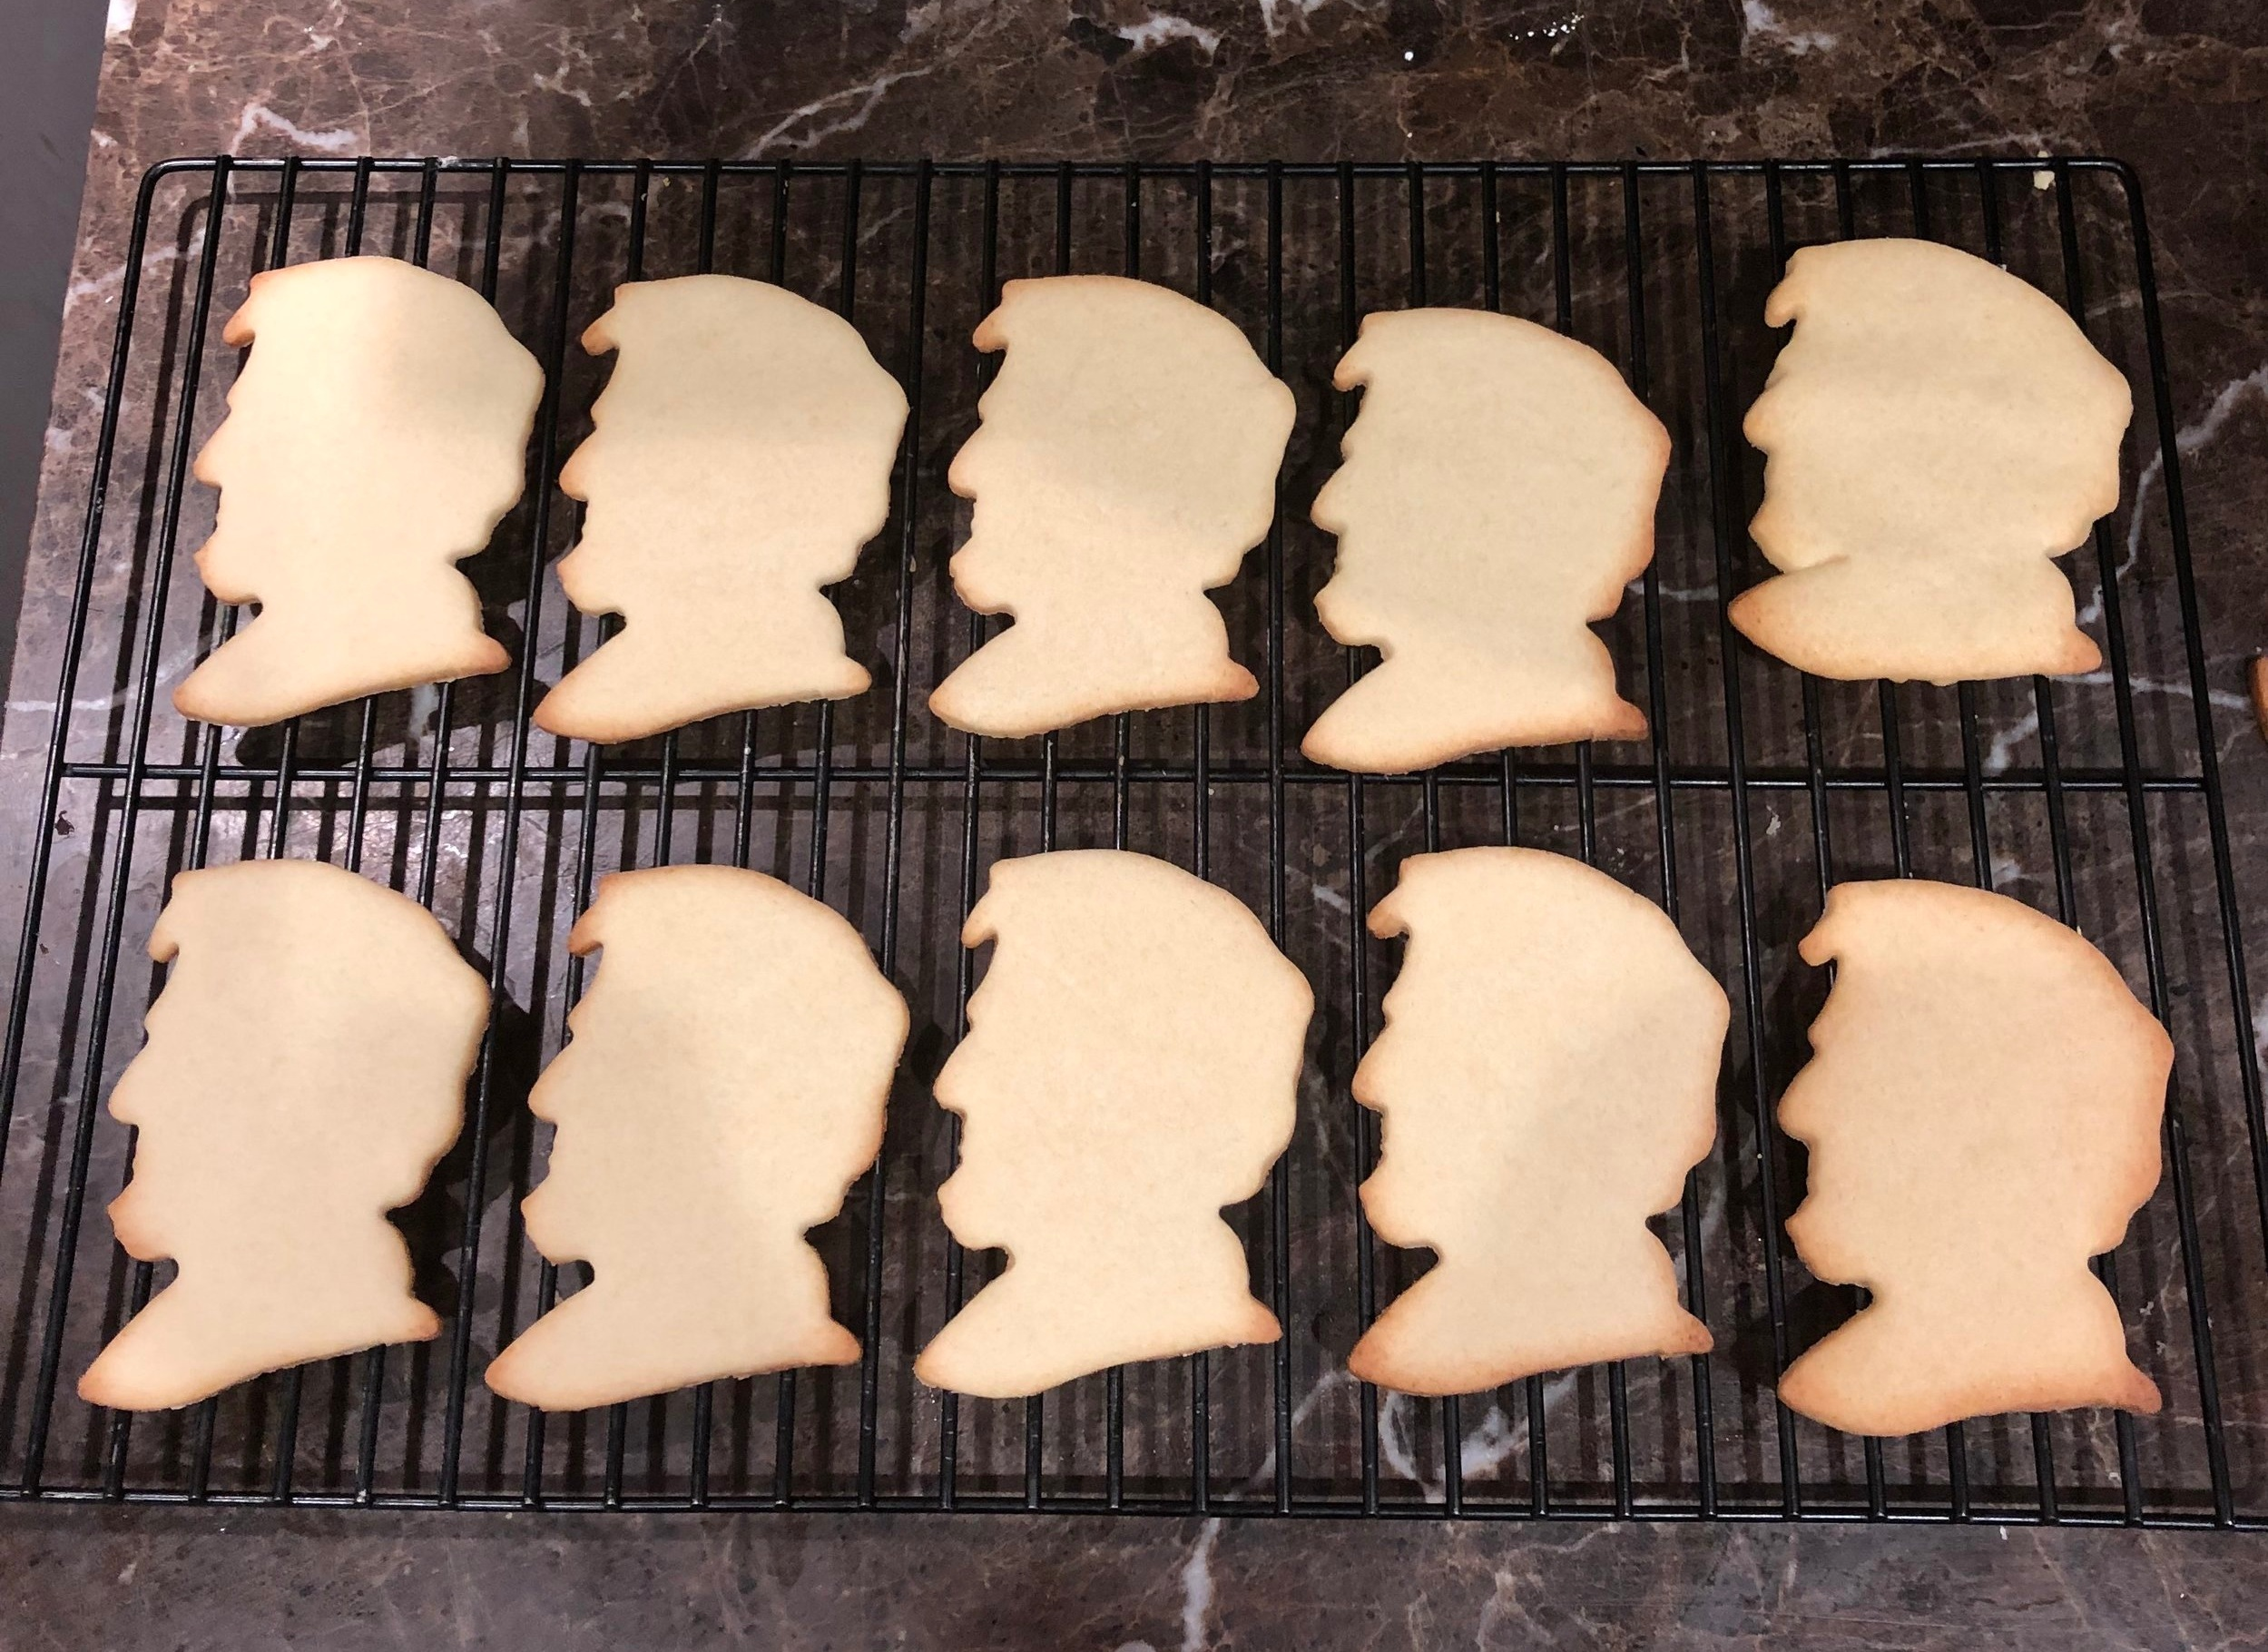 The cookies are out of the oven and ready for frosting. February 12th is a day to celebrate our 16th President. What are you doing?